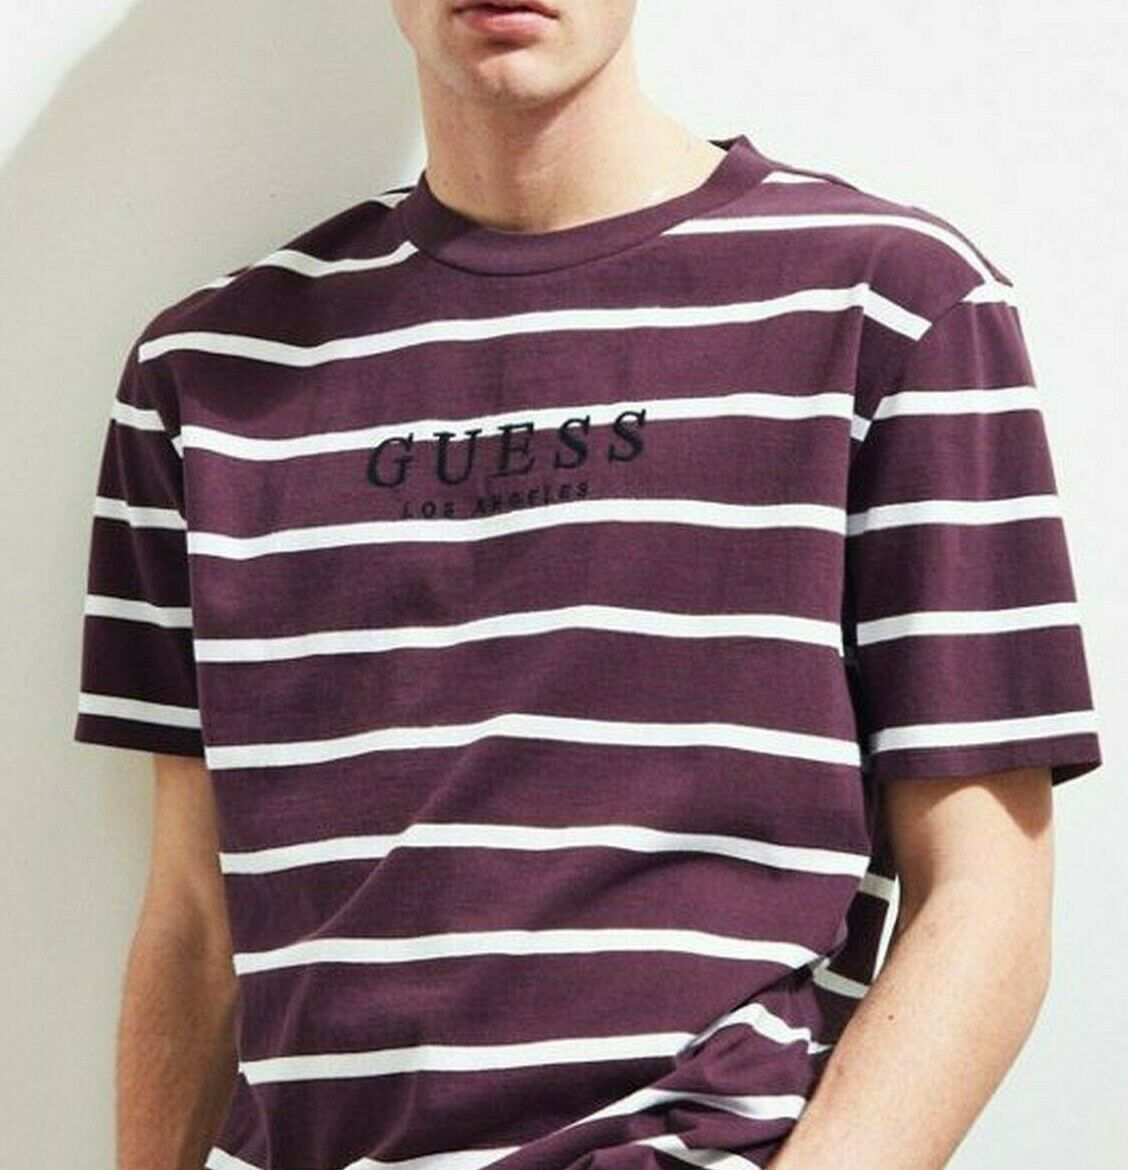 Guess - Los Angeles Original Stripe Oversized T-shirt